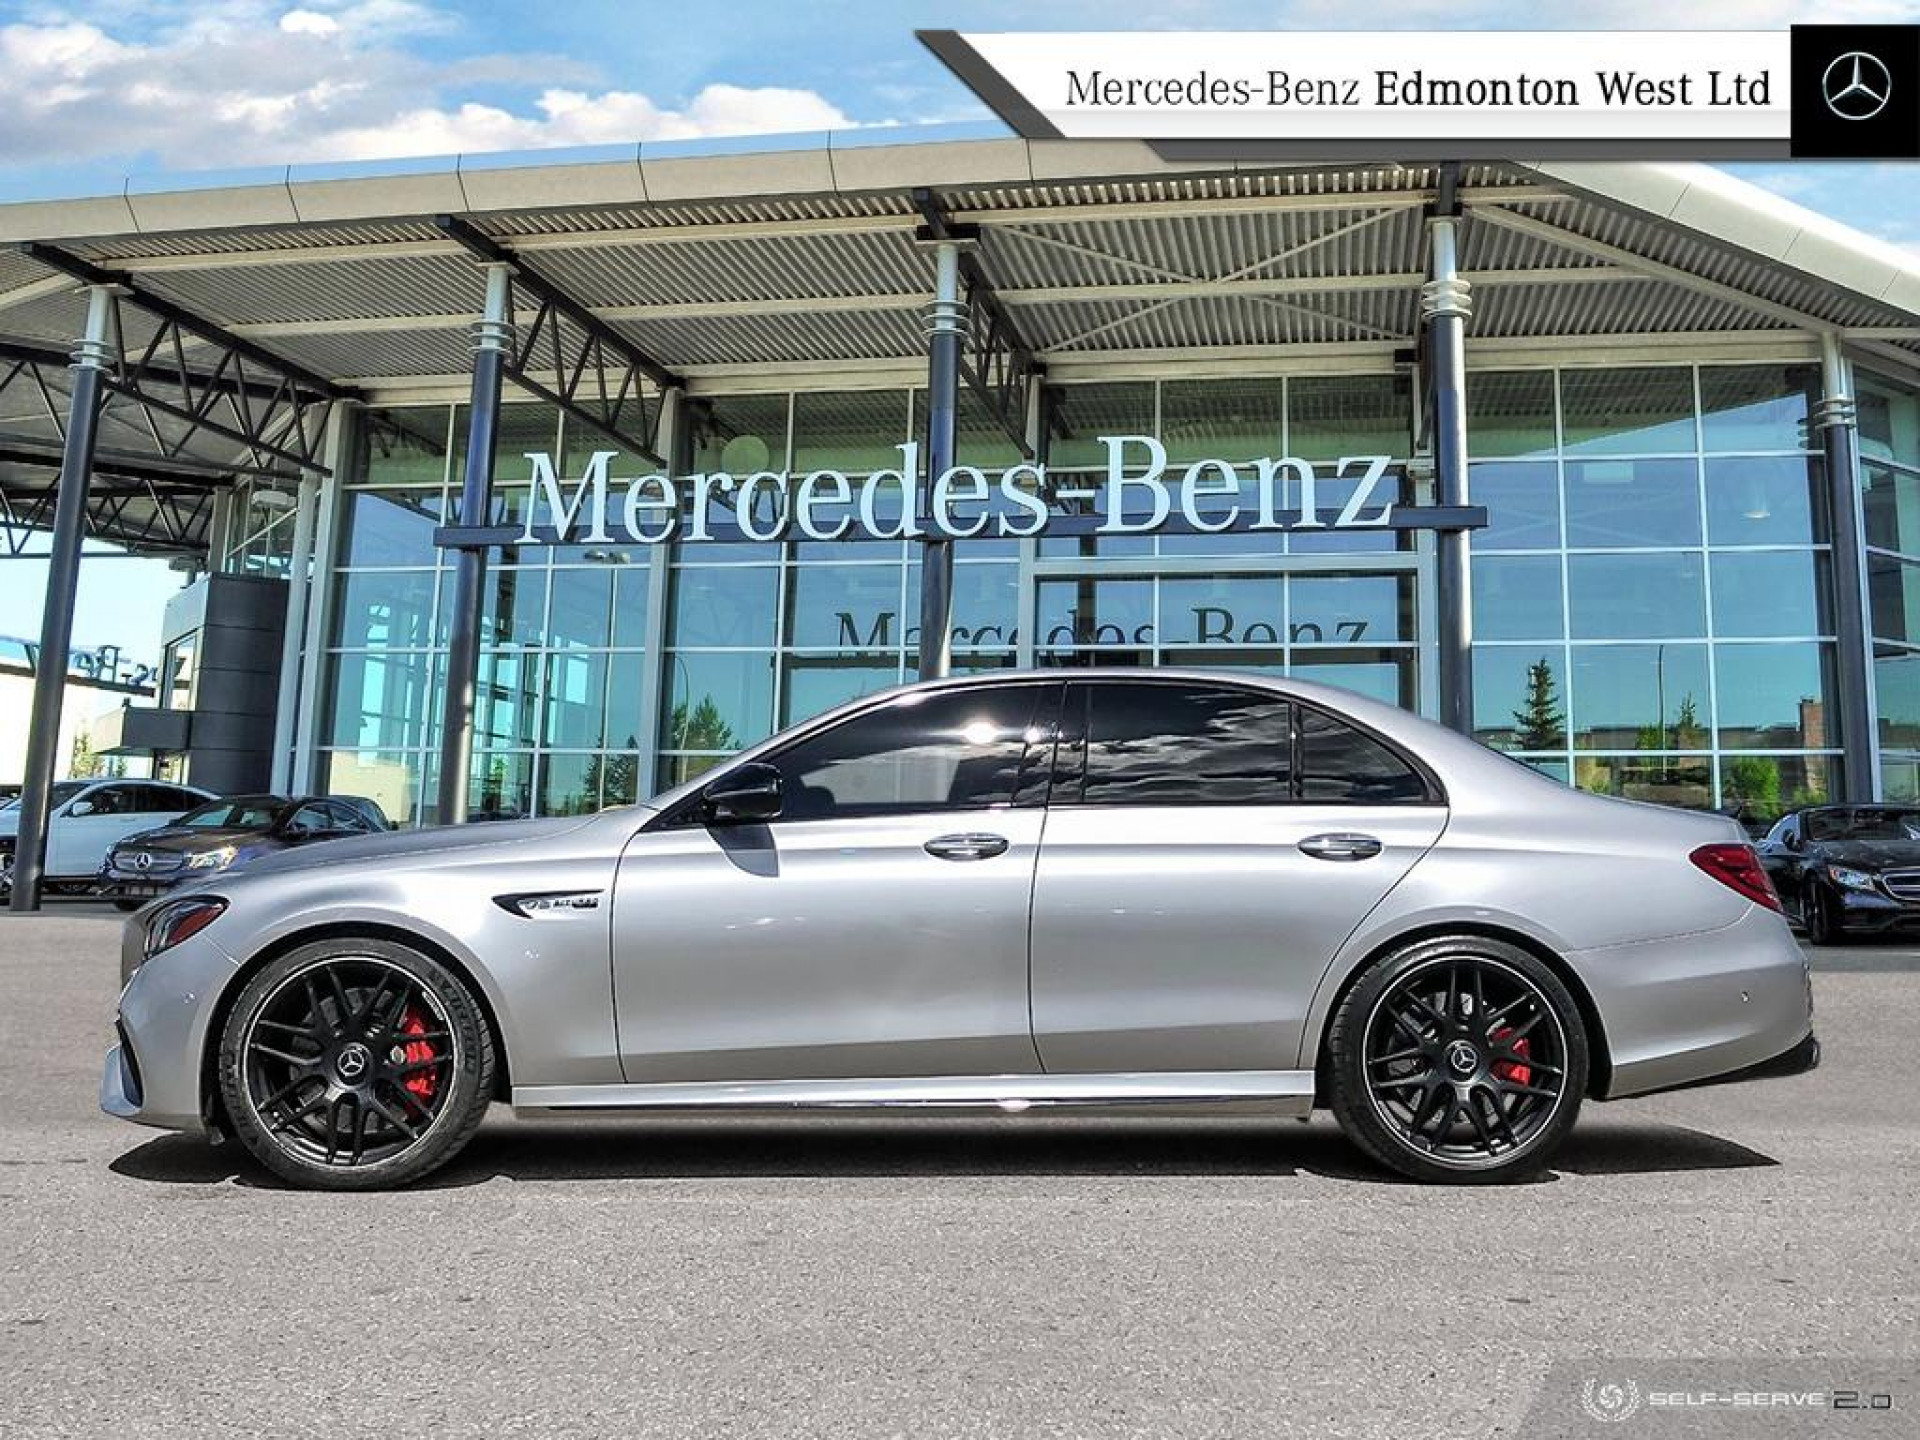 Pre-Owned 2018 Mercedes Benz E-Class E 63S 4MATIC+ Sedan Star Certified Vehicle, One Owner, 3M Rock Film Applied